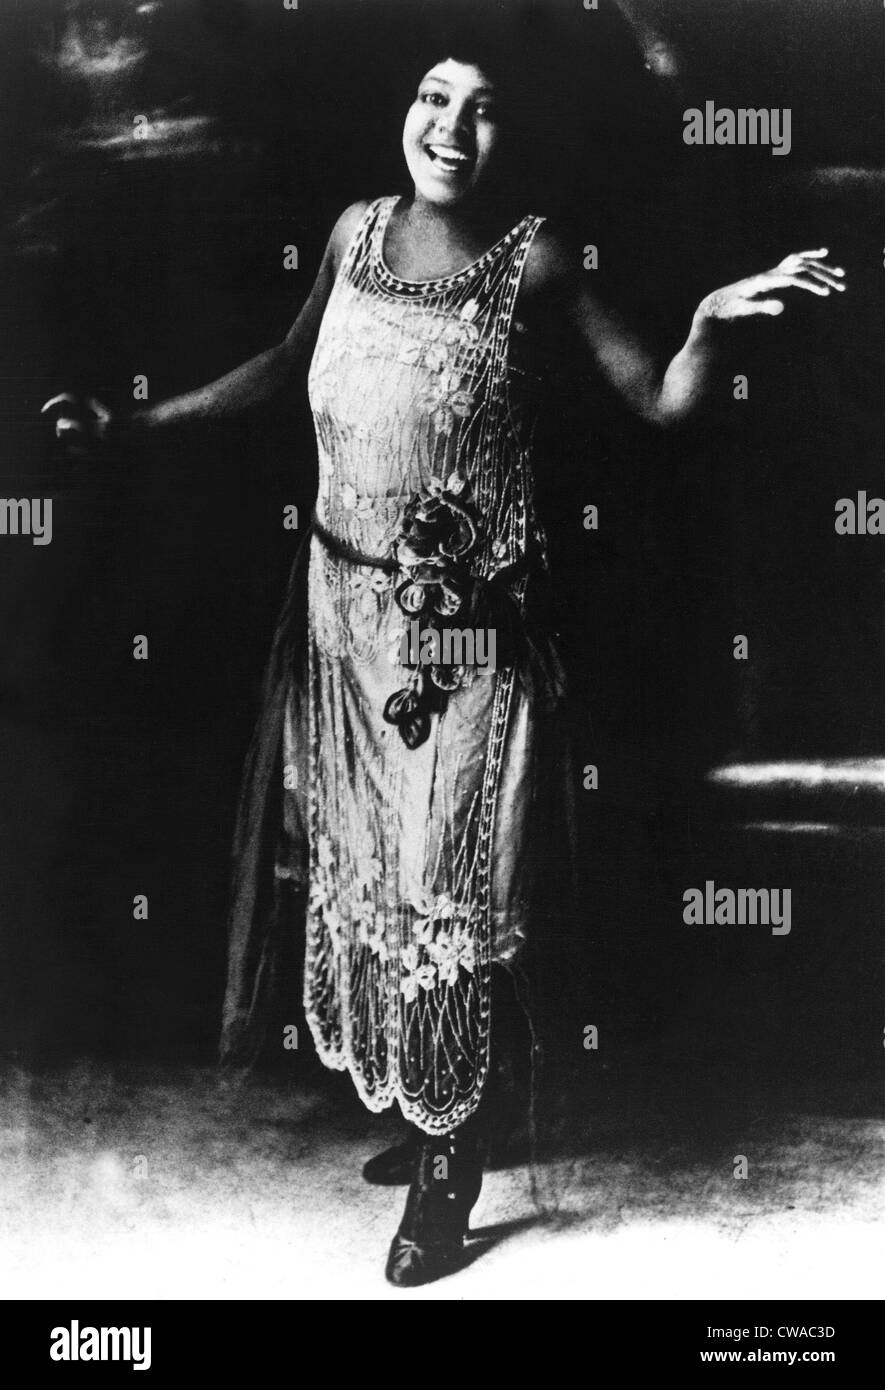 Bessie Smith, blues singer, 1920s. Courtesy: CSU Archives / Everett Collection - Stock Image